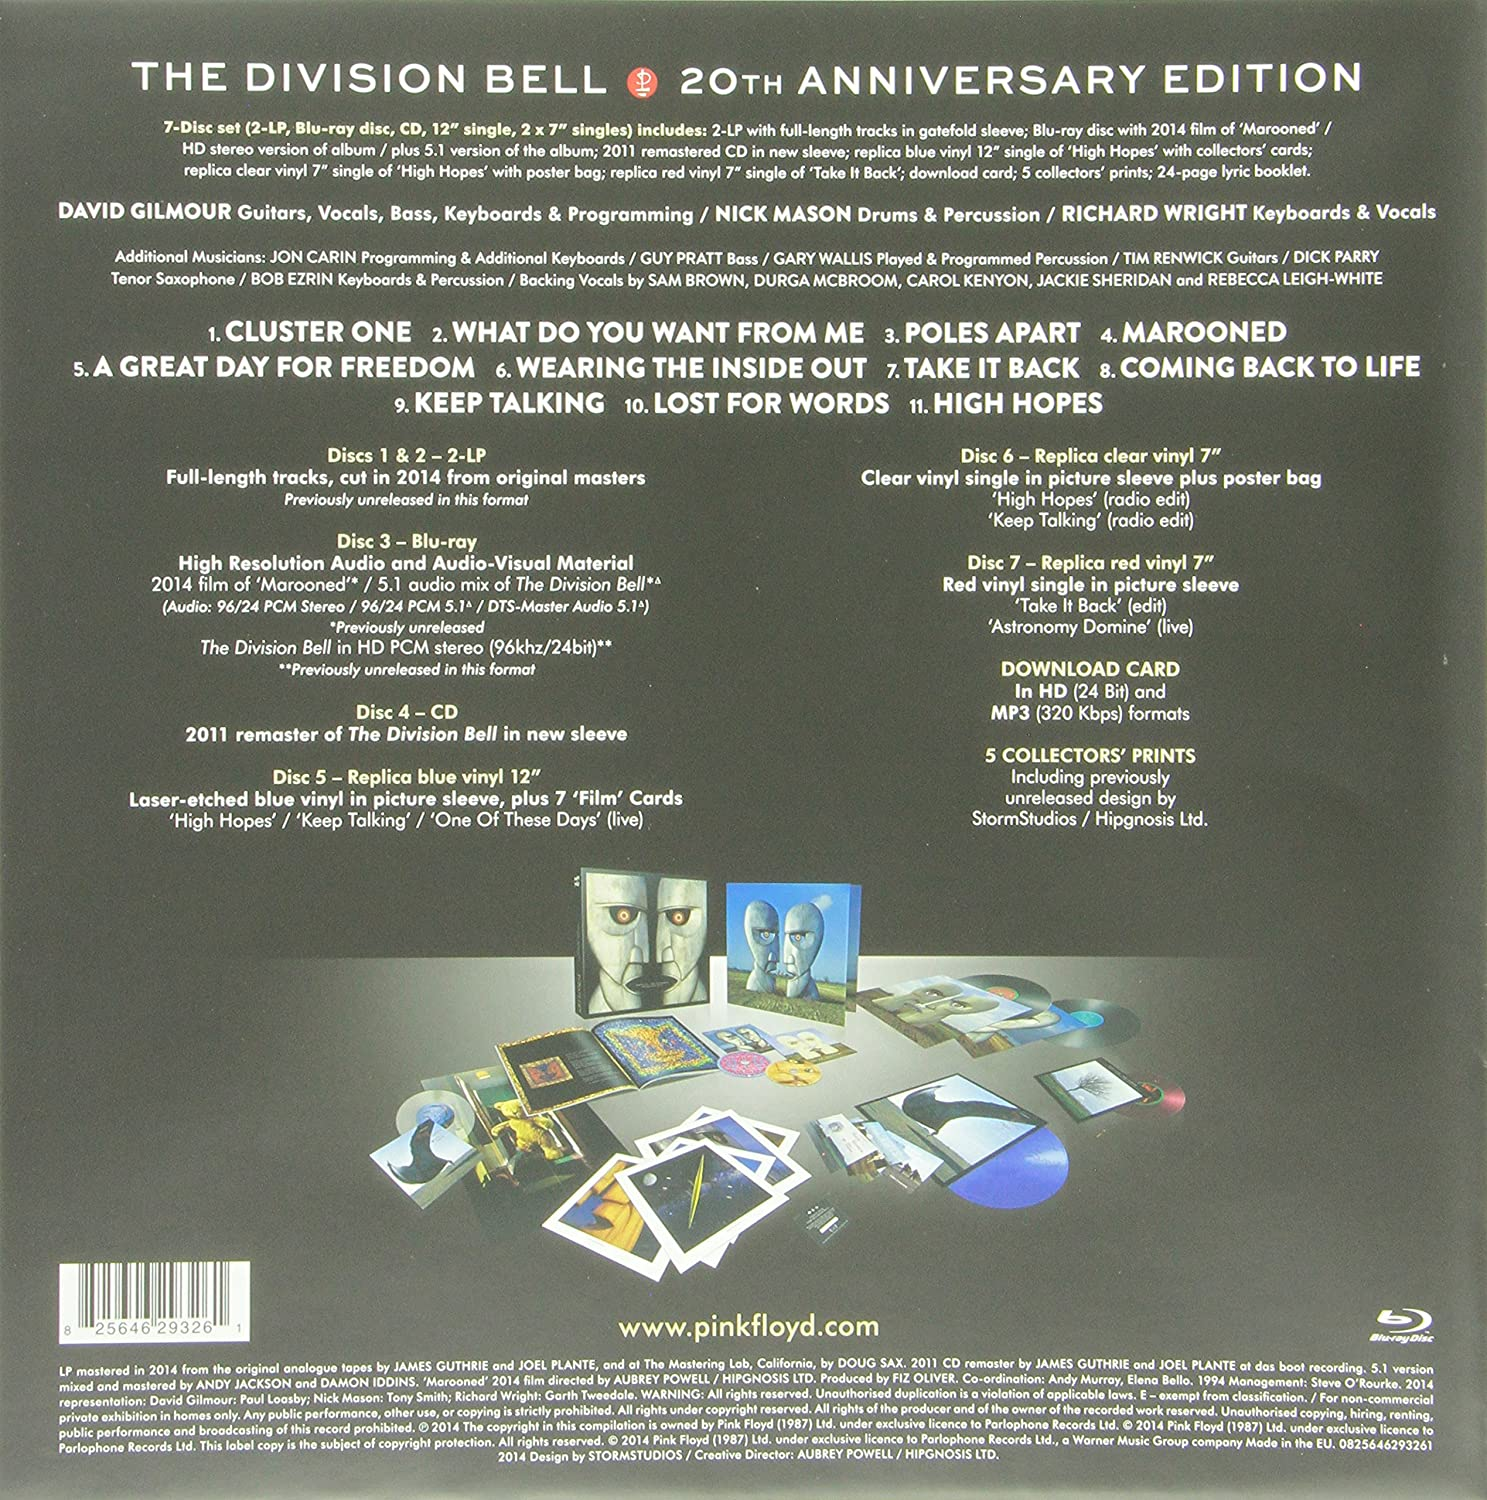 The Division Bell - 20th Deluxe Box Set: Pink Floyd: Amazon.es: Música